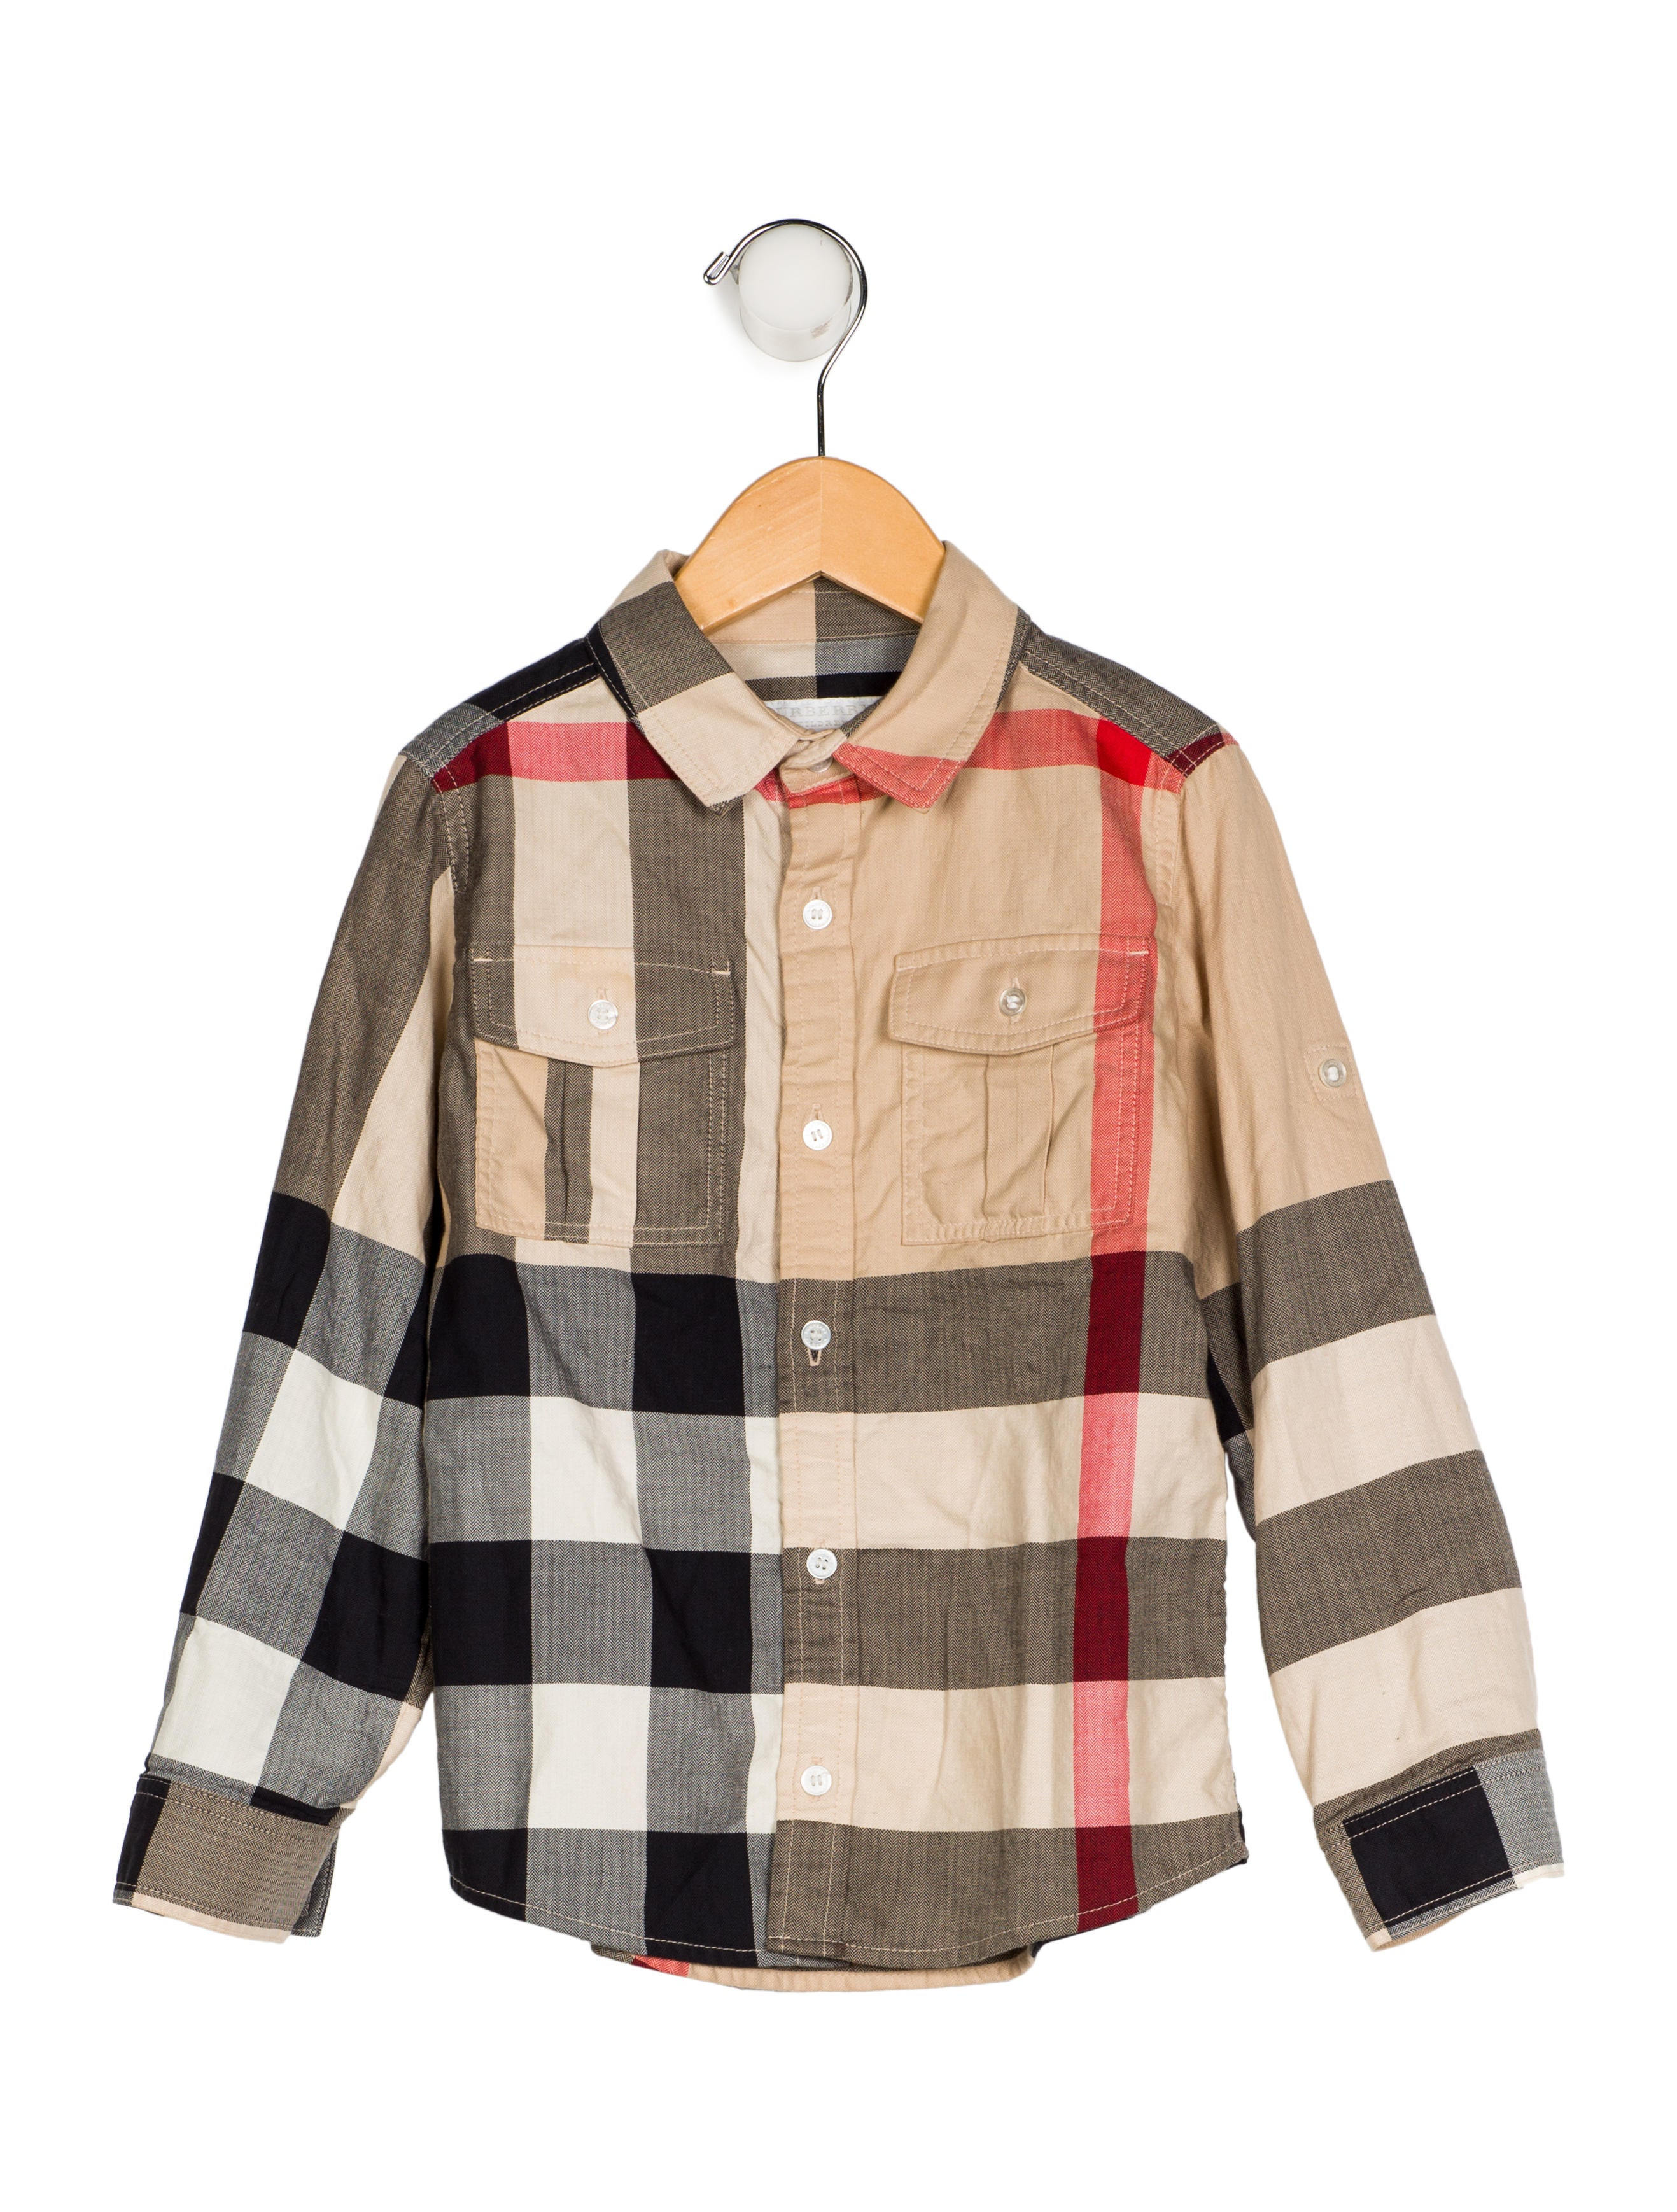 c7e80e4e Burberry Boys' Exploded Check Print Shirt - Boys - BUR96546 | The ...